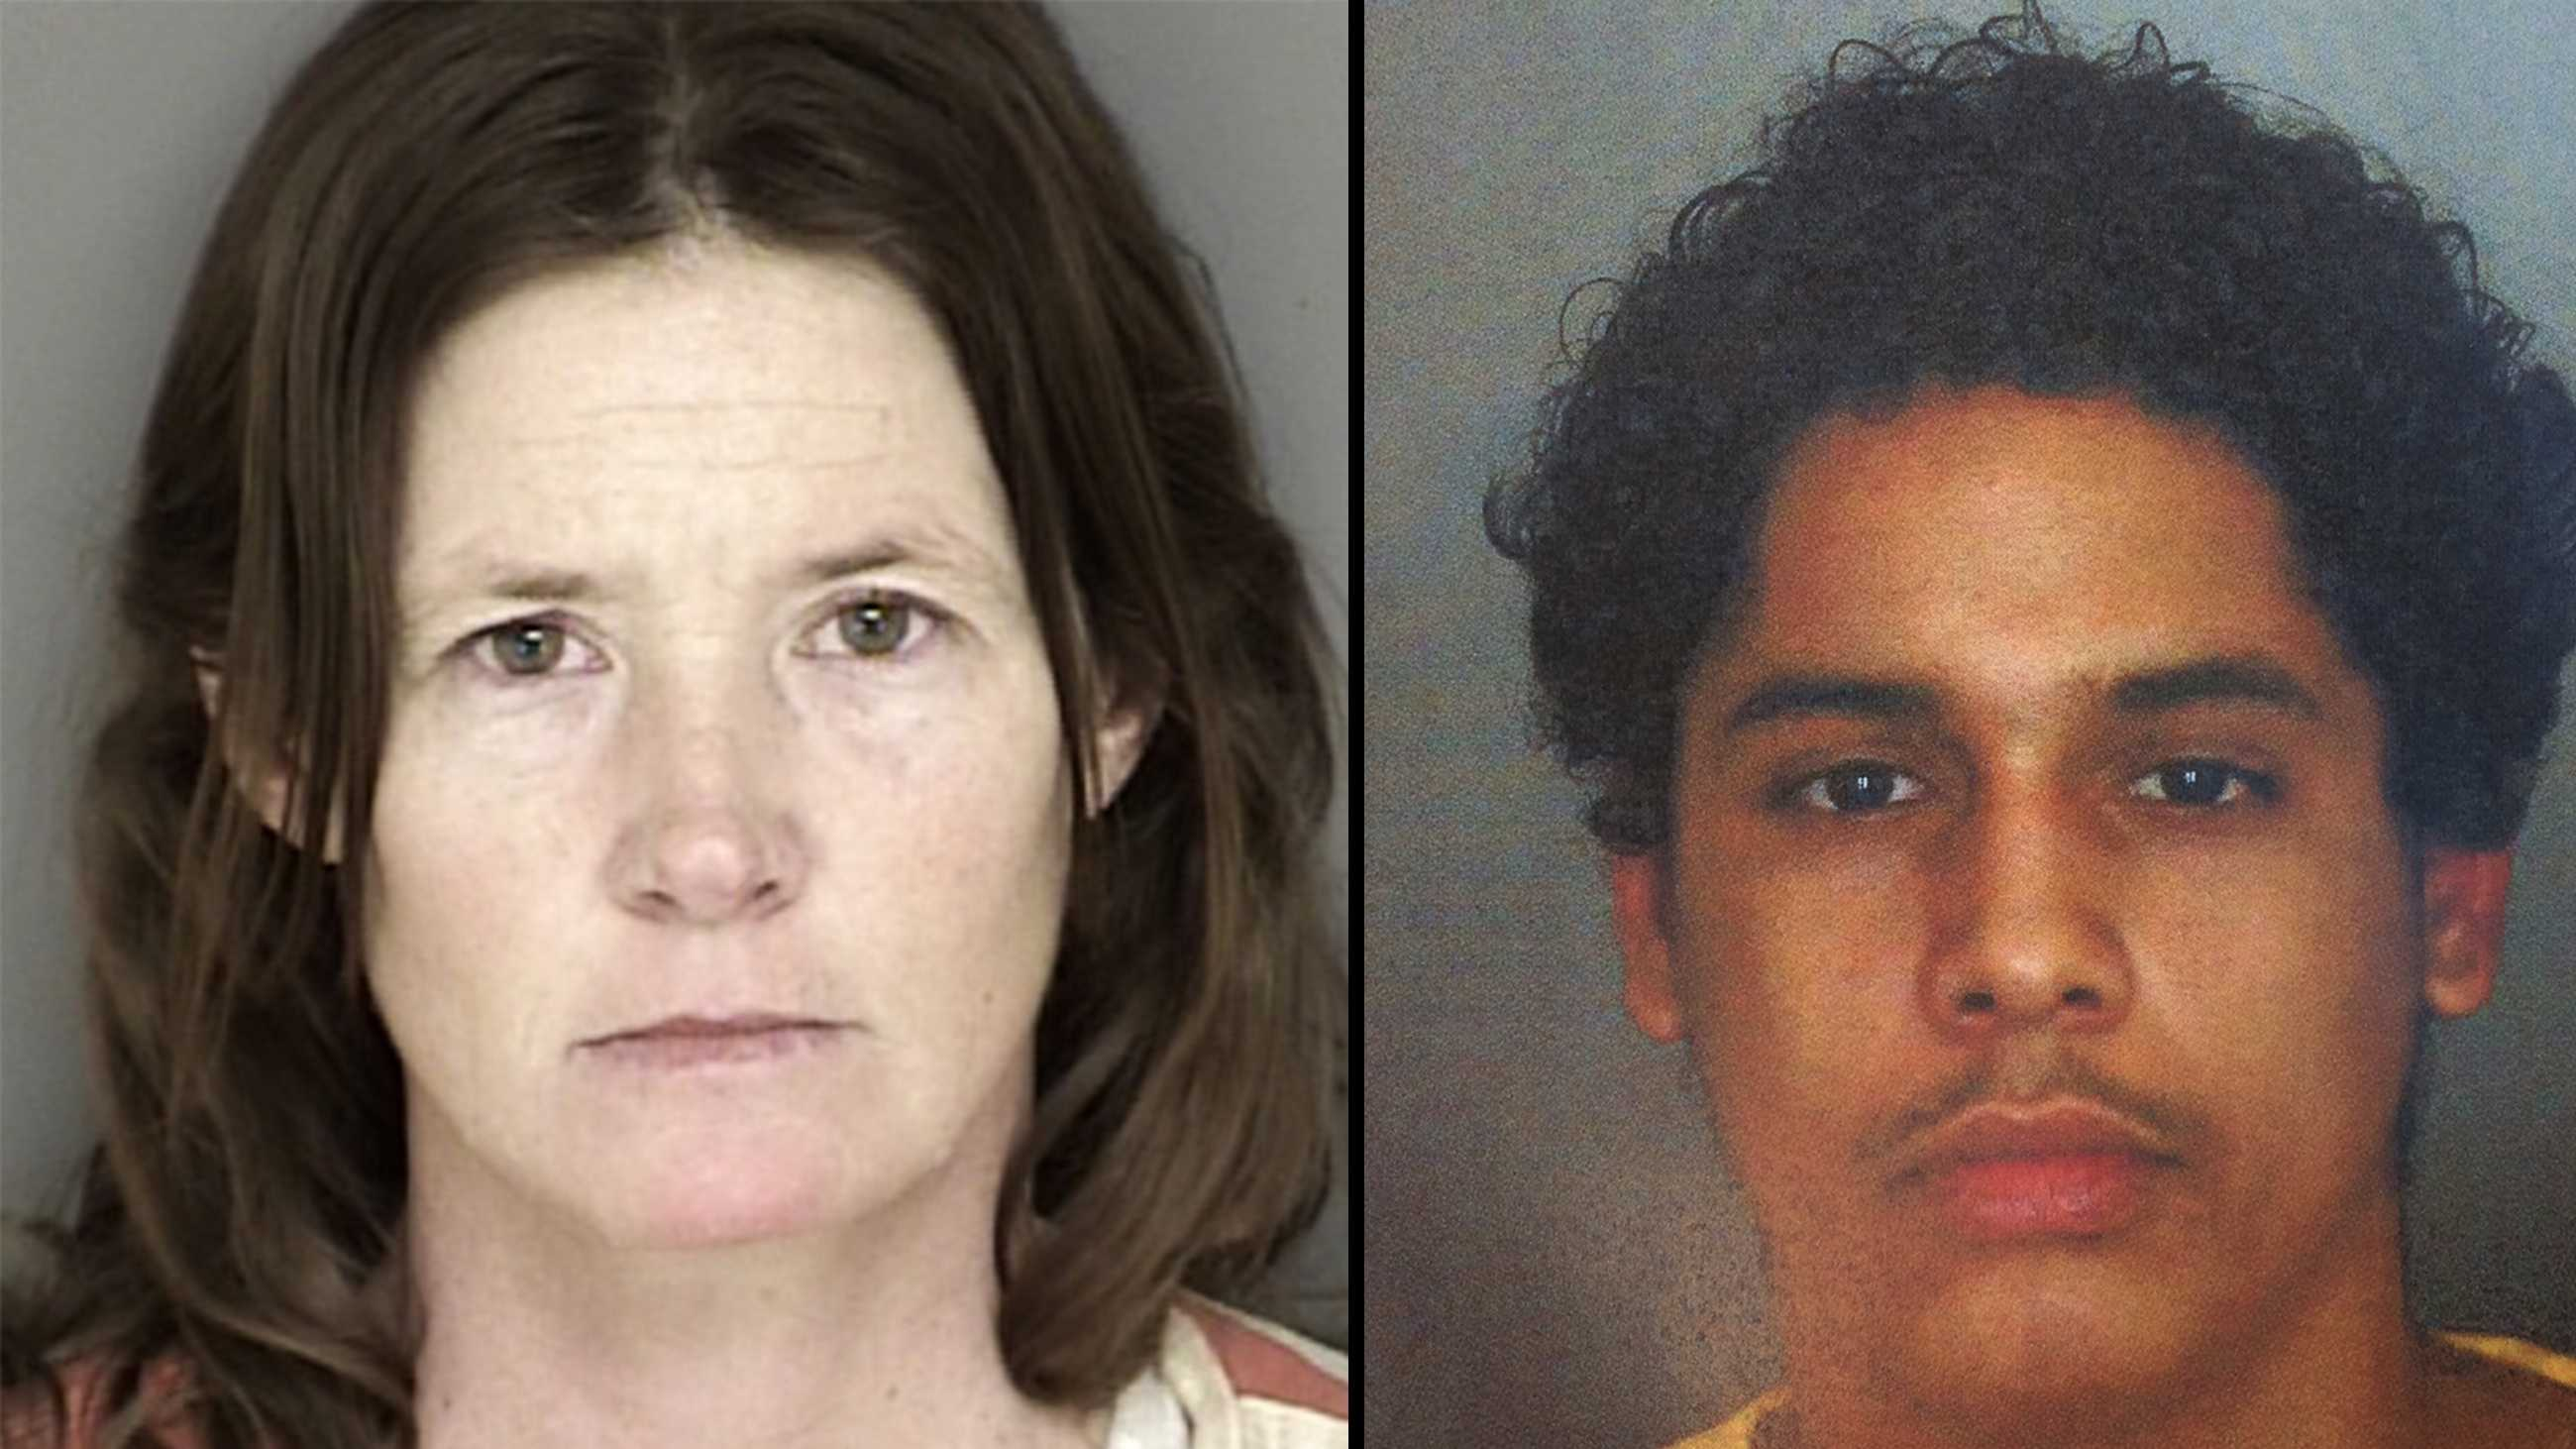 Tami Huntsman and Gonzalo Curiel are seen in mug shots photographed on Jan. 6, 2016.